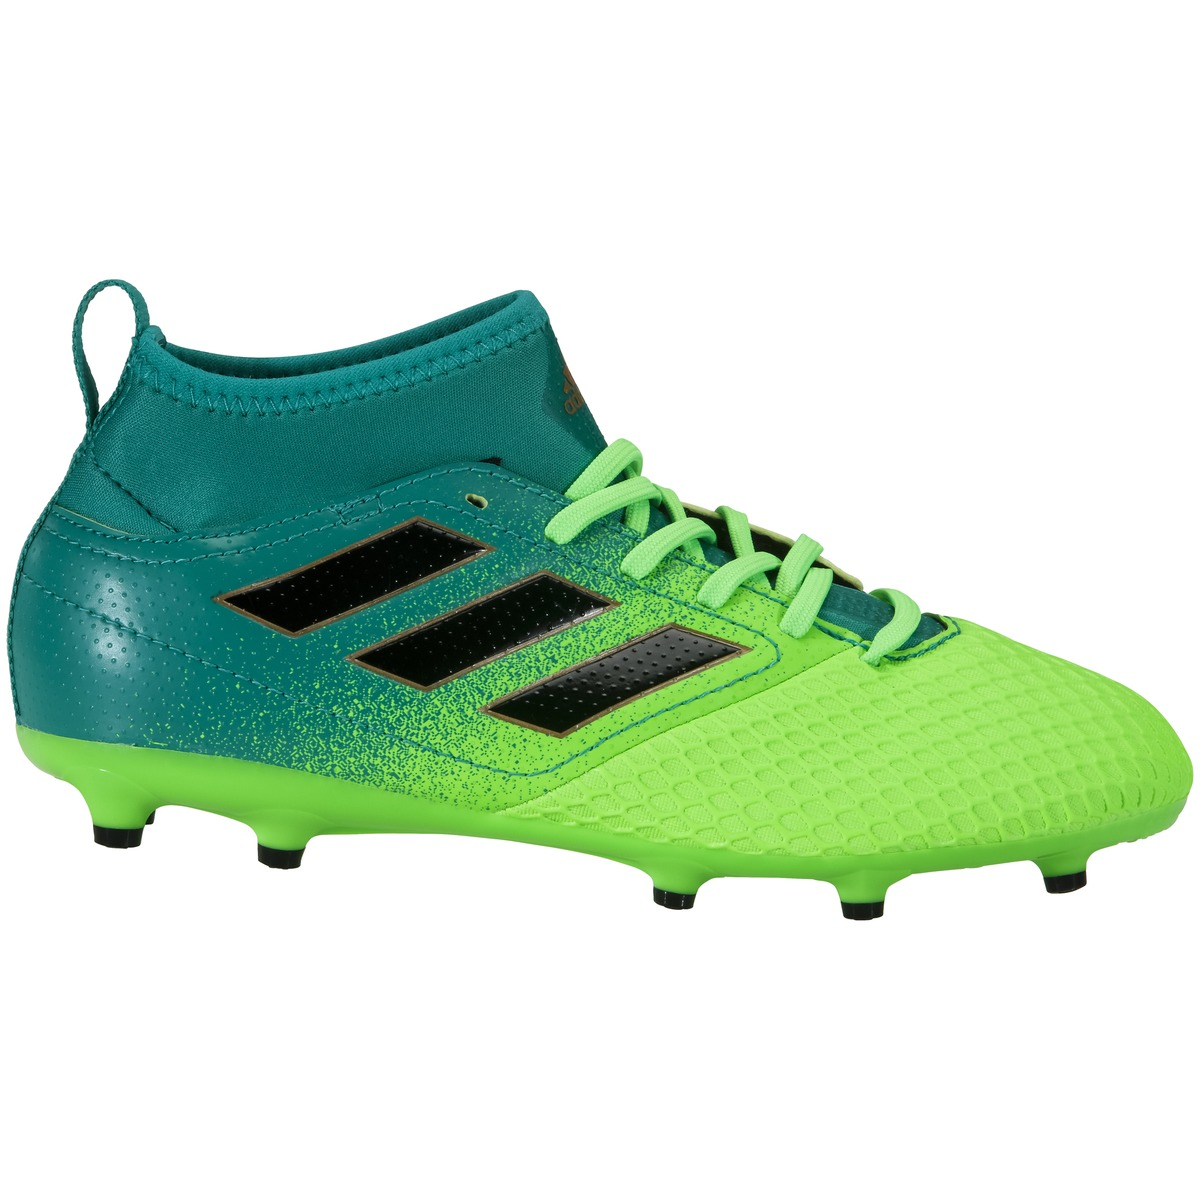 a735d4c3 Buy adidas ace tango 17.3 q4 futsalsko junior fotballsko . Shop ...